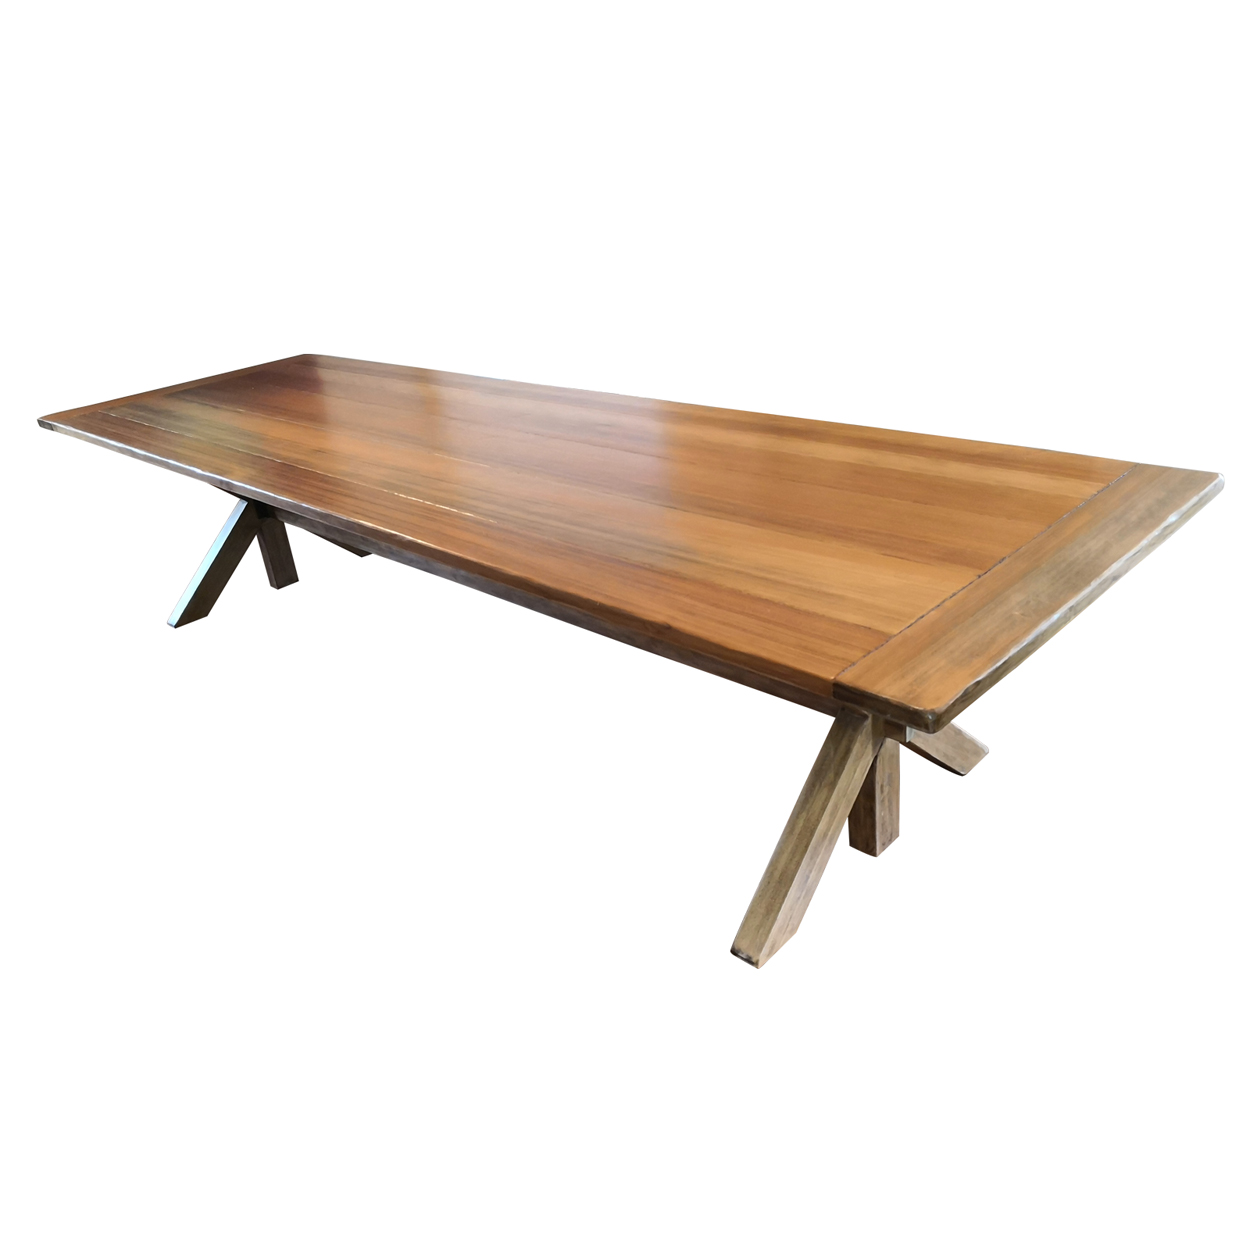 Two Design Lovers Kauri pine dining table seats 12 side view